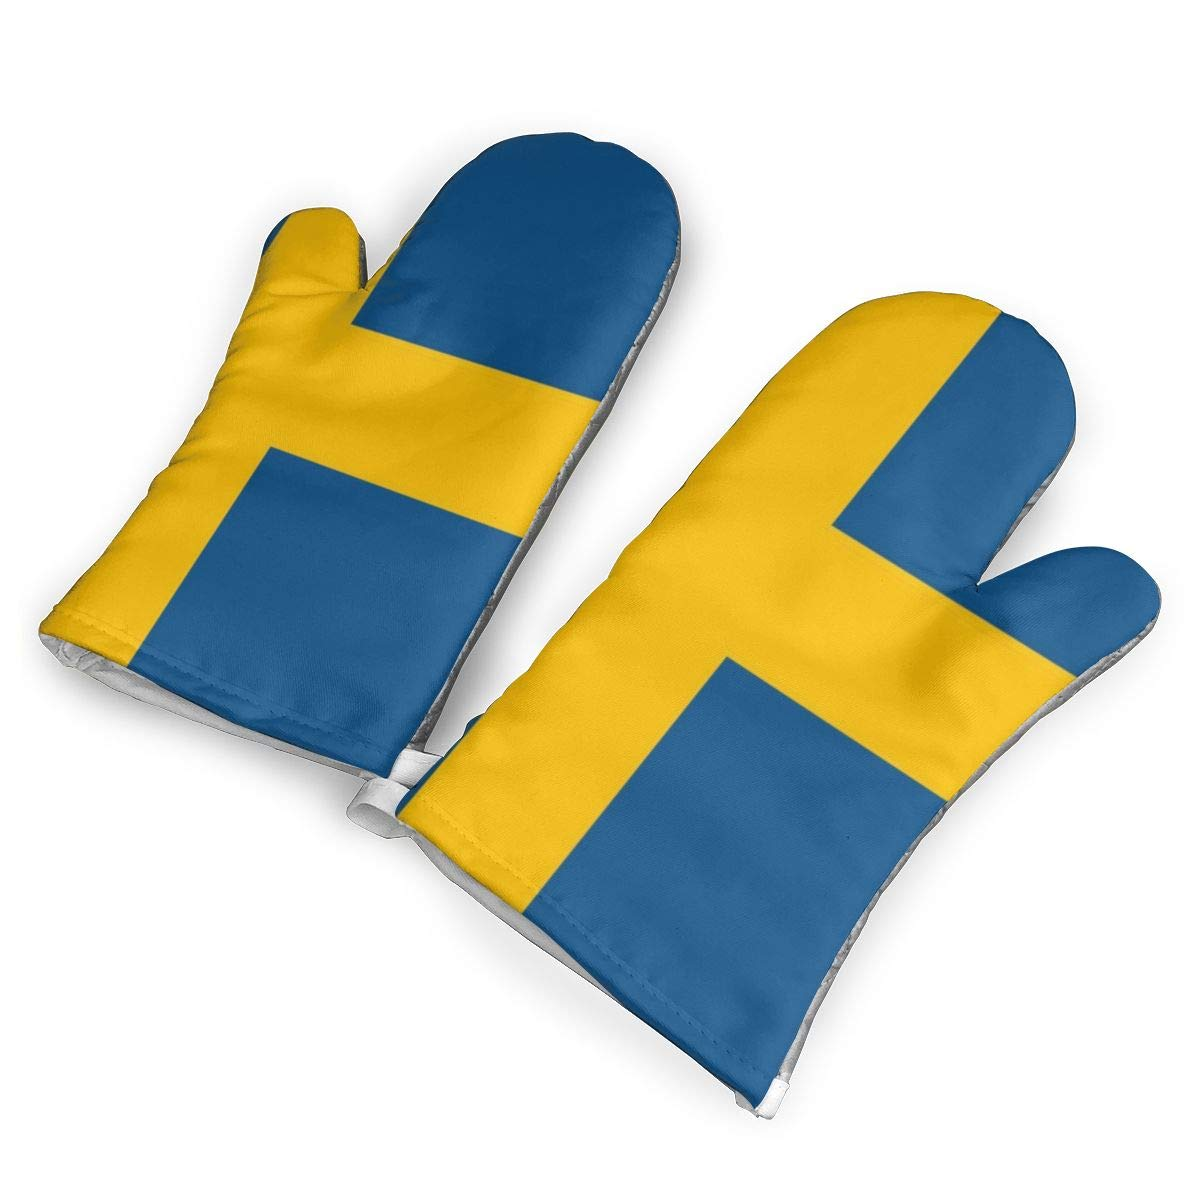 VshiXzno Sweden Swedish Flag Oven Mitts,Professional Heat Resistant to 500¡« F,Non-Slip Kitchen Oven Gloves for Cooking,Baking,Grilling,Barbecue Potholders